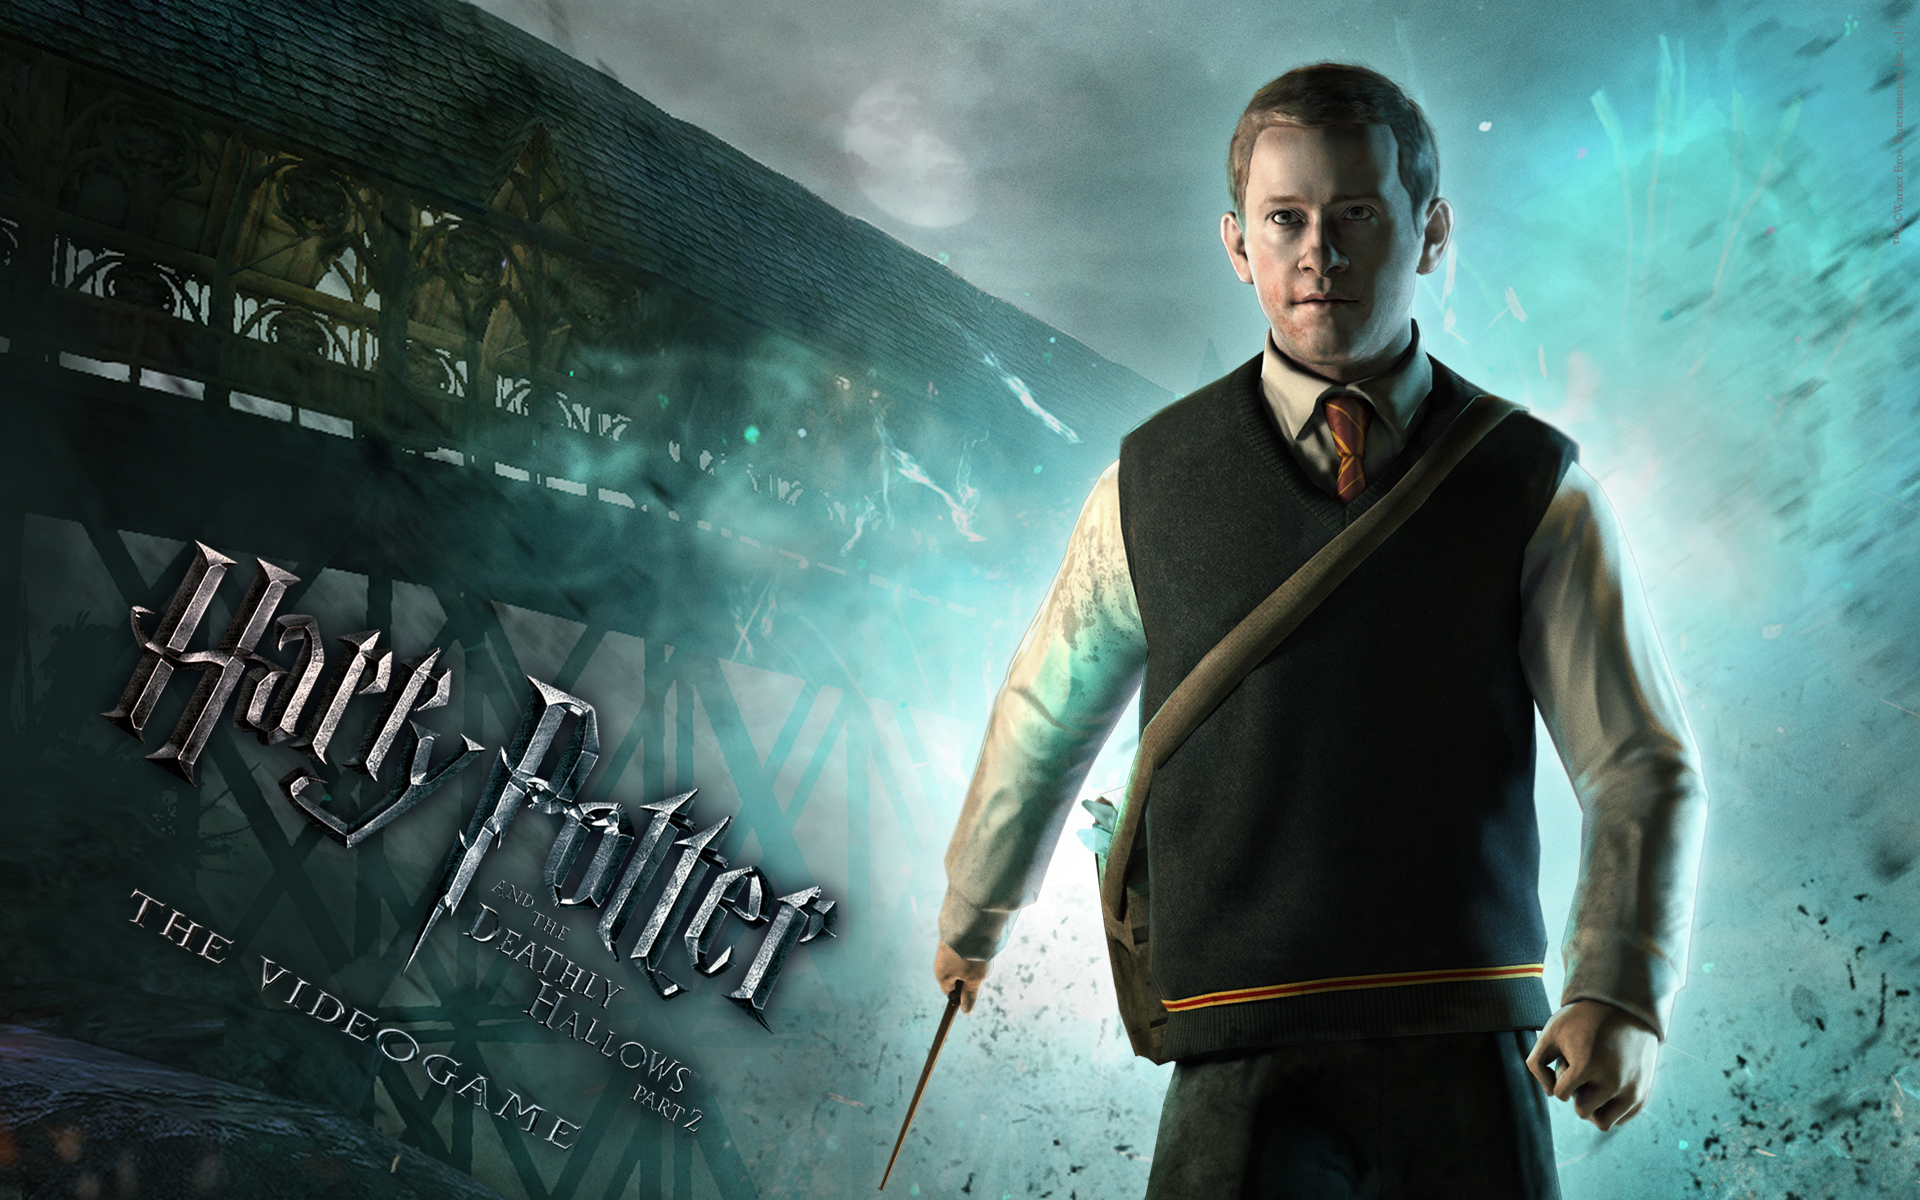 Seamus Wallpaper from Harry Potter and the Deathly Hallows: Part 2 The Video Game